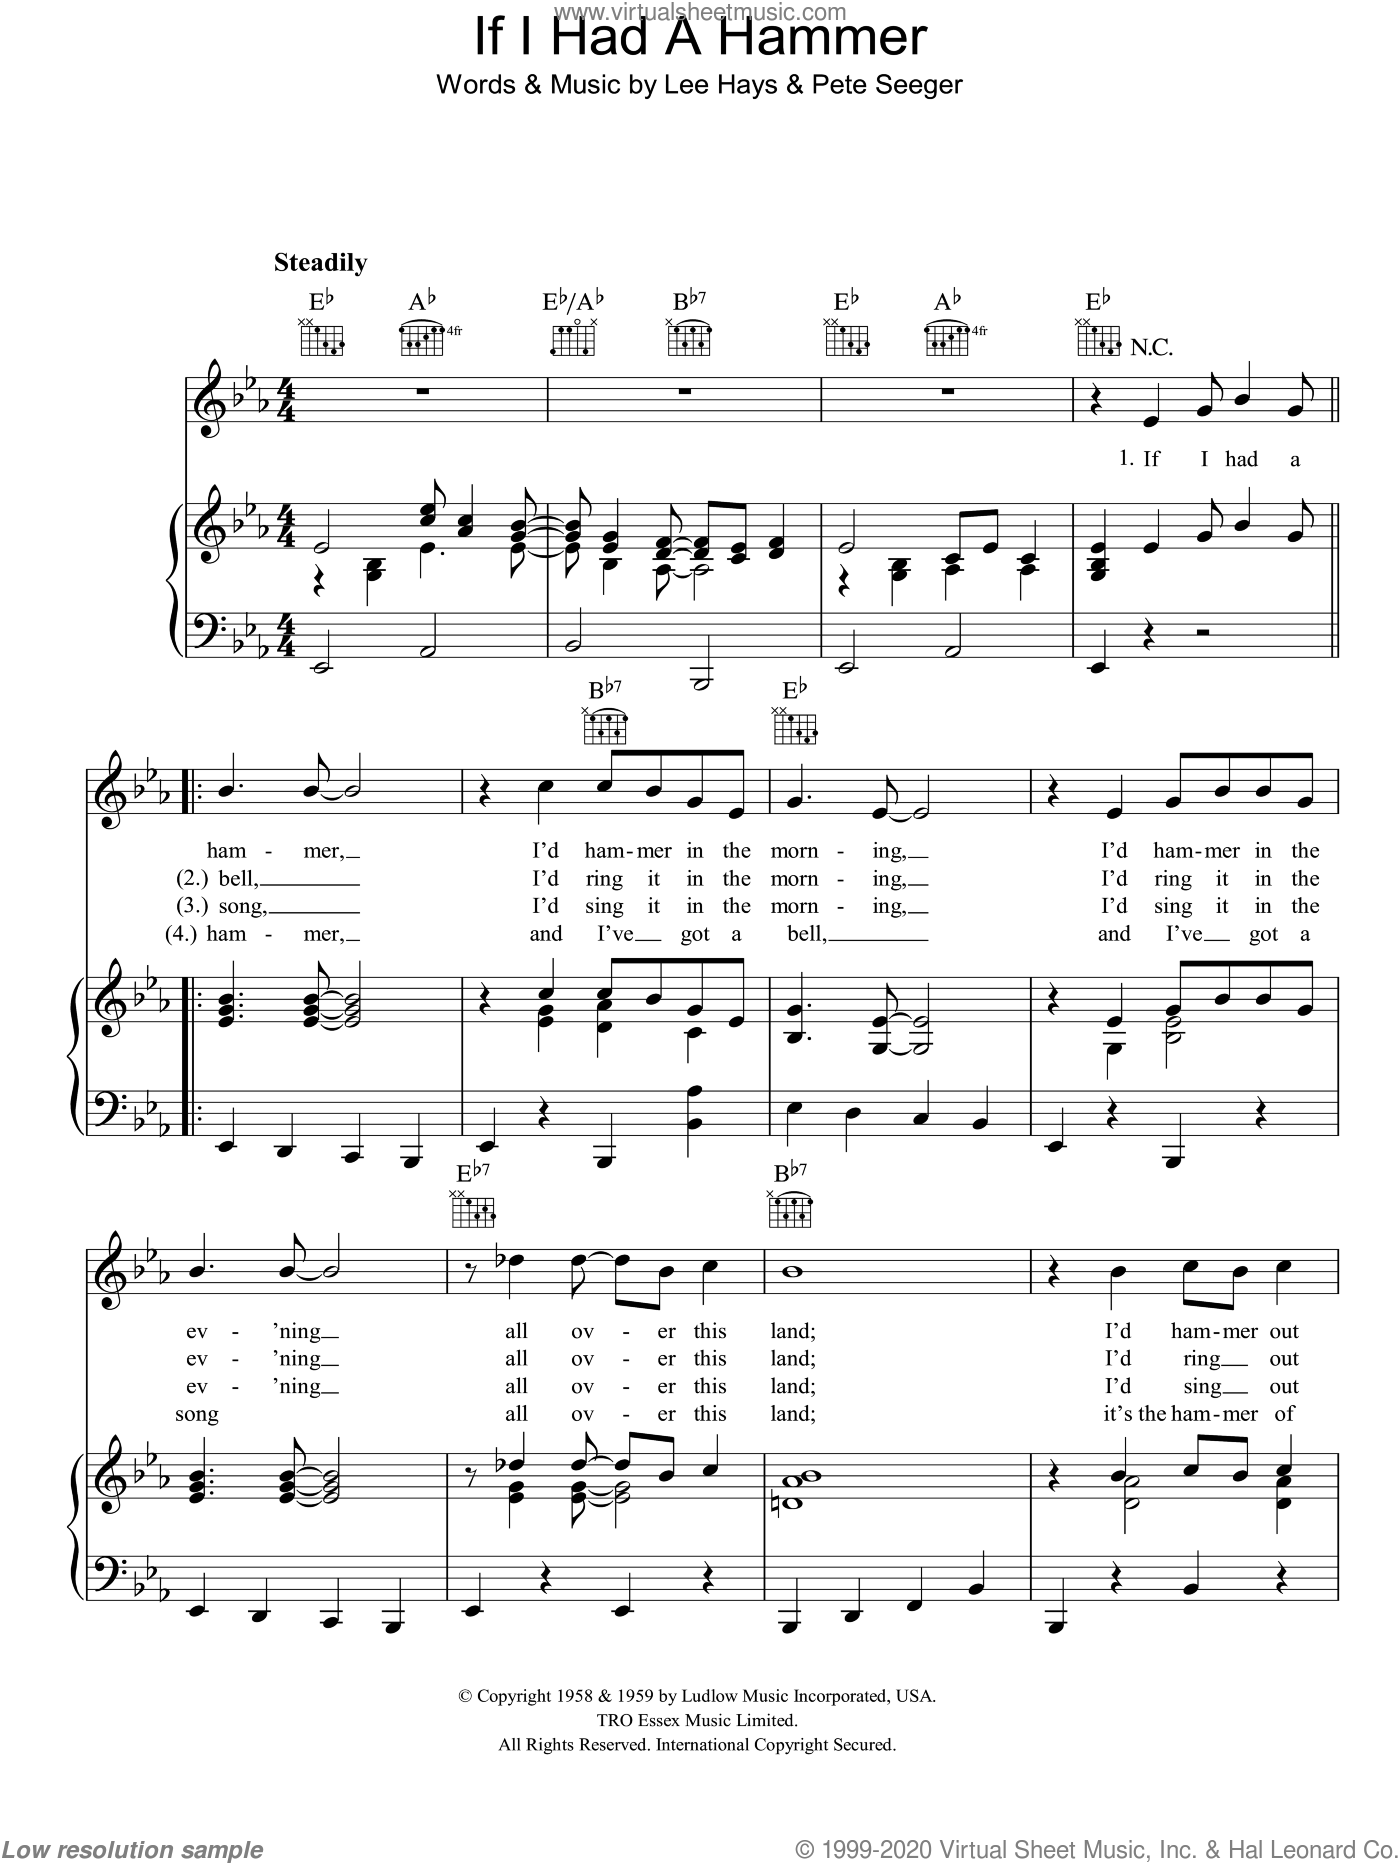 If I Had A Hammer sheet music for voice, piano or guitar by Lee Hays and Pete Seeger. Score Image Preview.